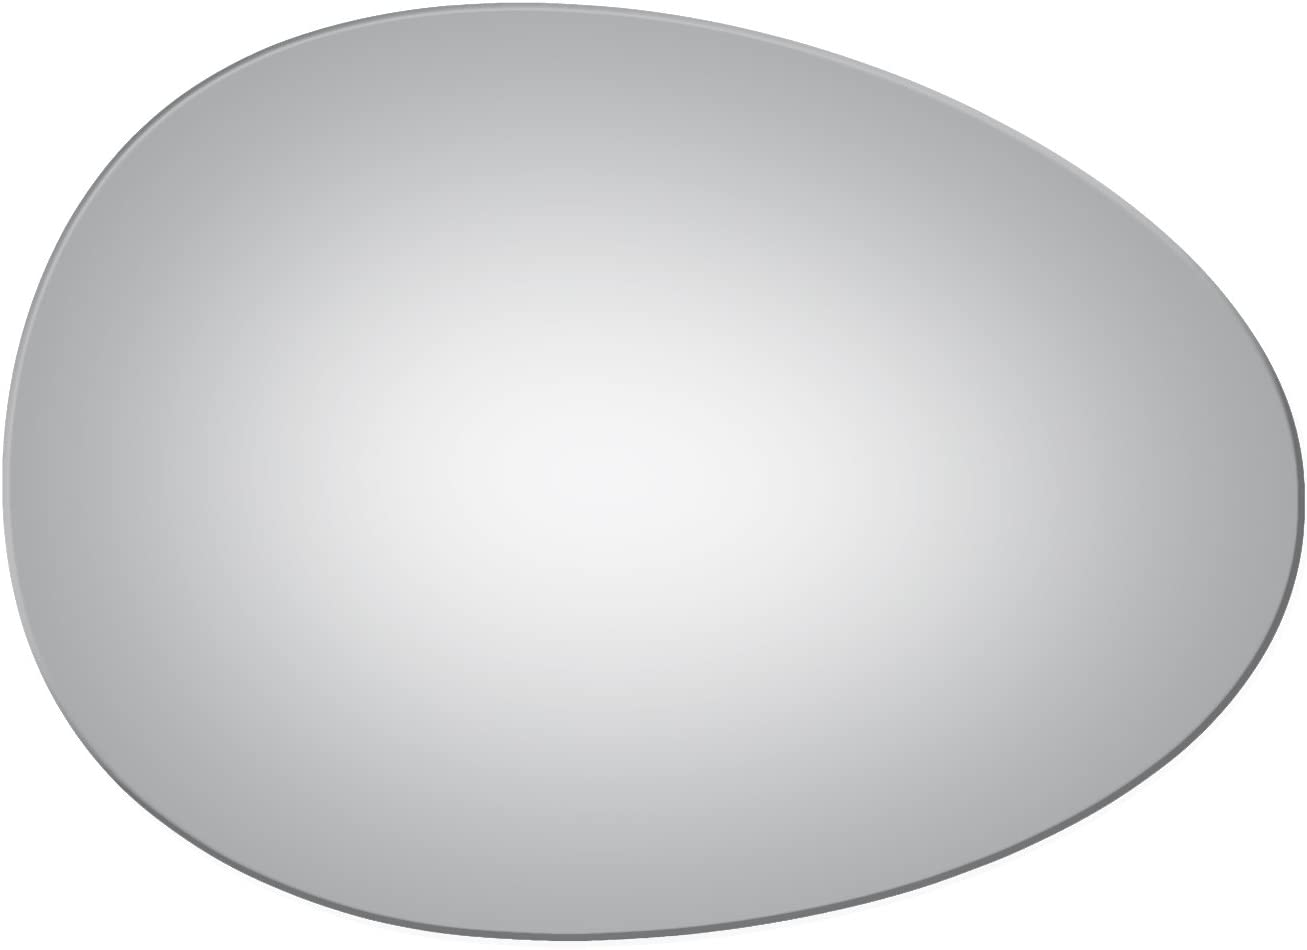 Convex Passenger Max 71% OFF Side Mirror latest Replacement MIN 2007-2015 for Glass